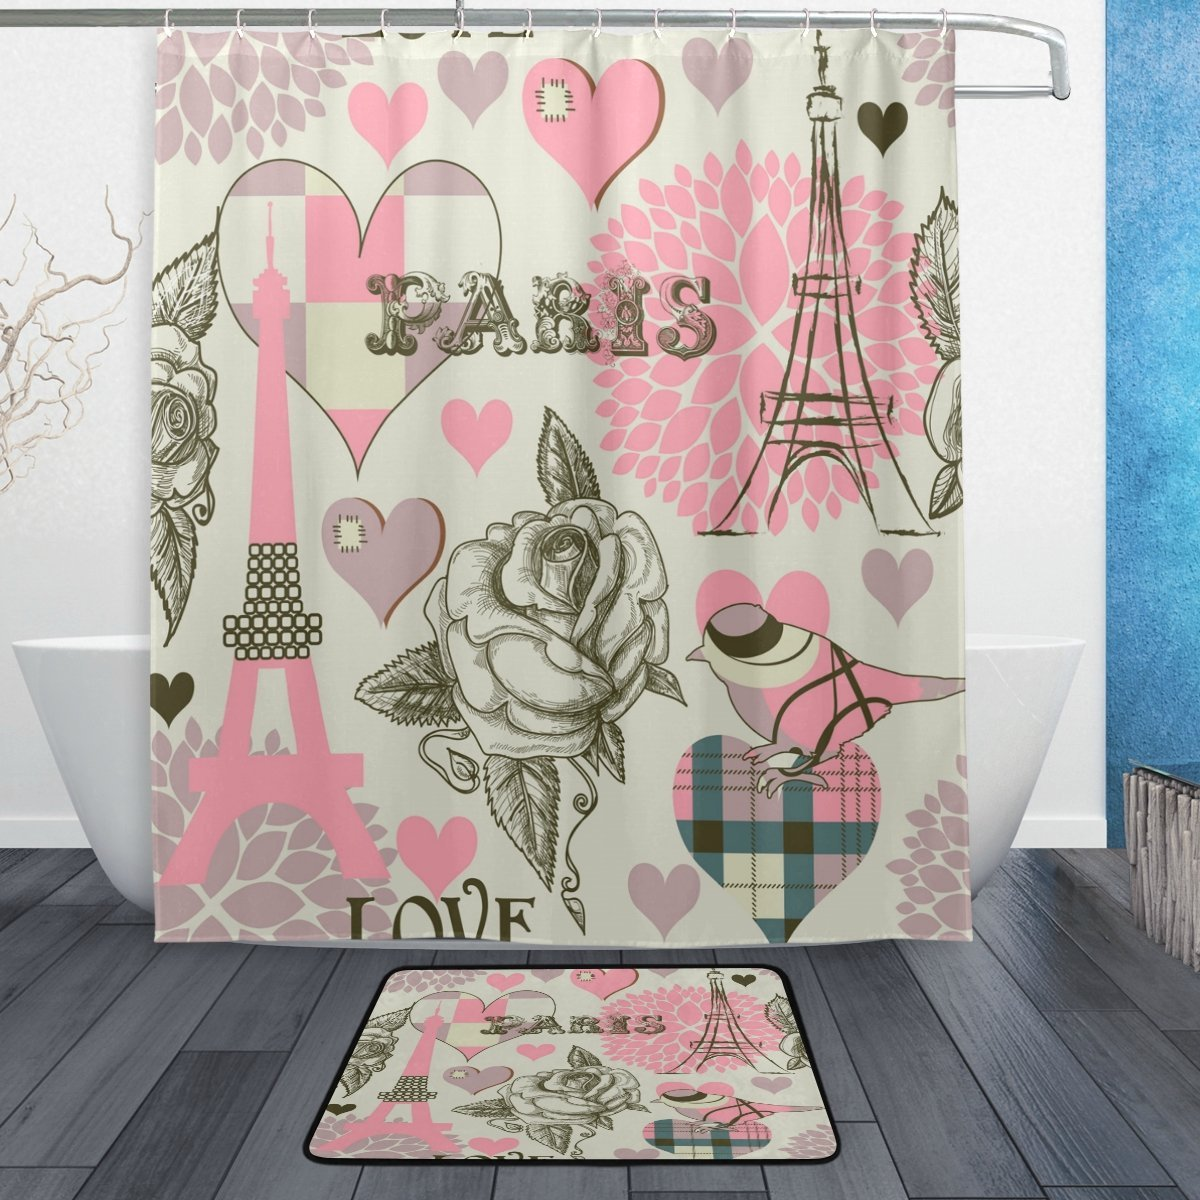 Us 17 24 25 Off Paris Eiffel Tower Rose Love Waterproof Polyester Fabric Shower Curtain With Hooks Doormat Bath Floor Mat Bathroom Home Decor In